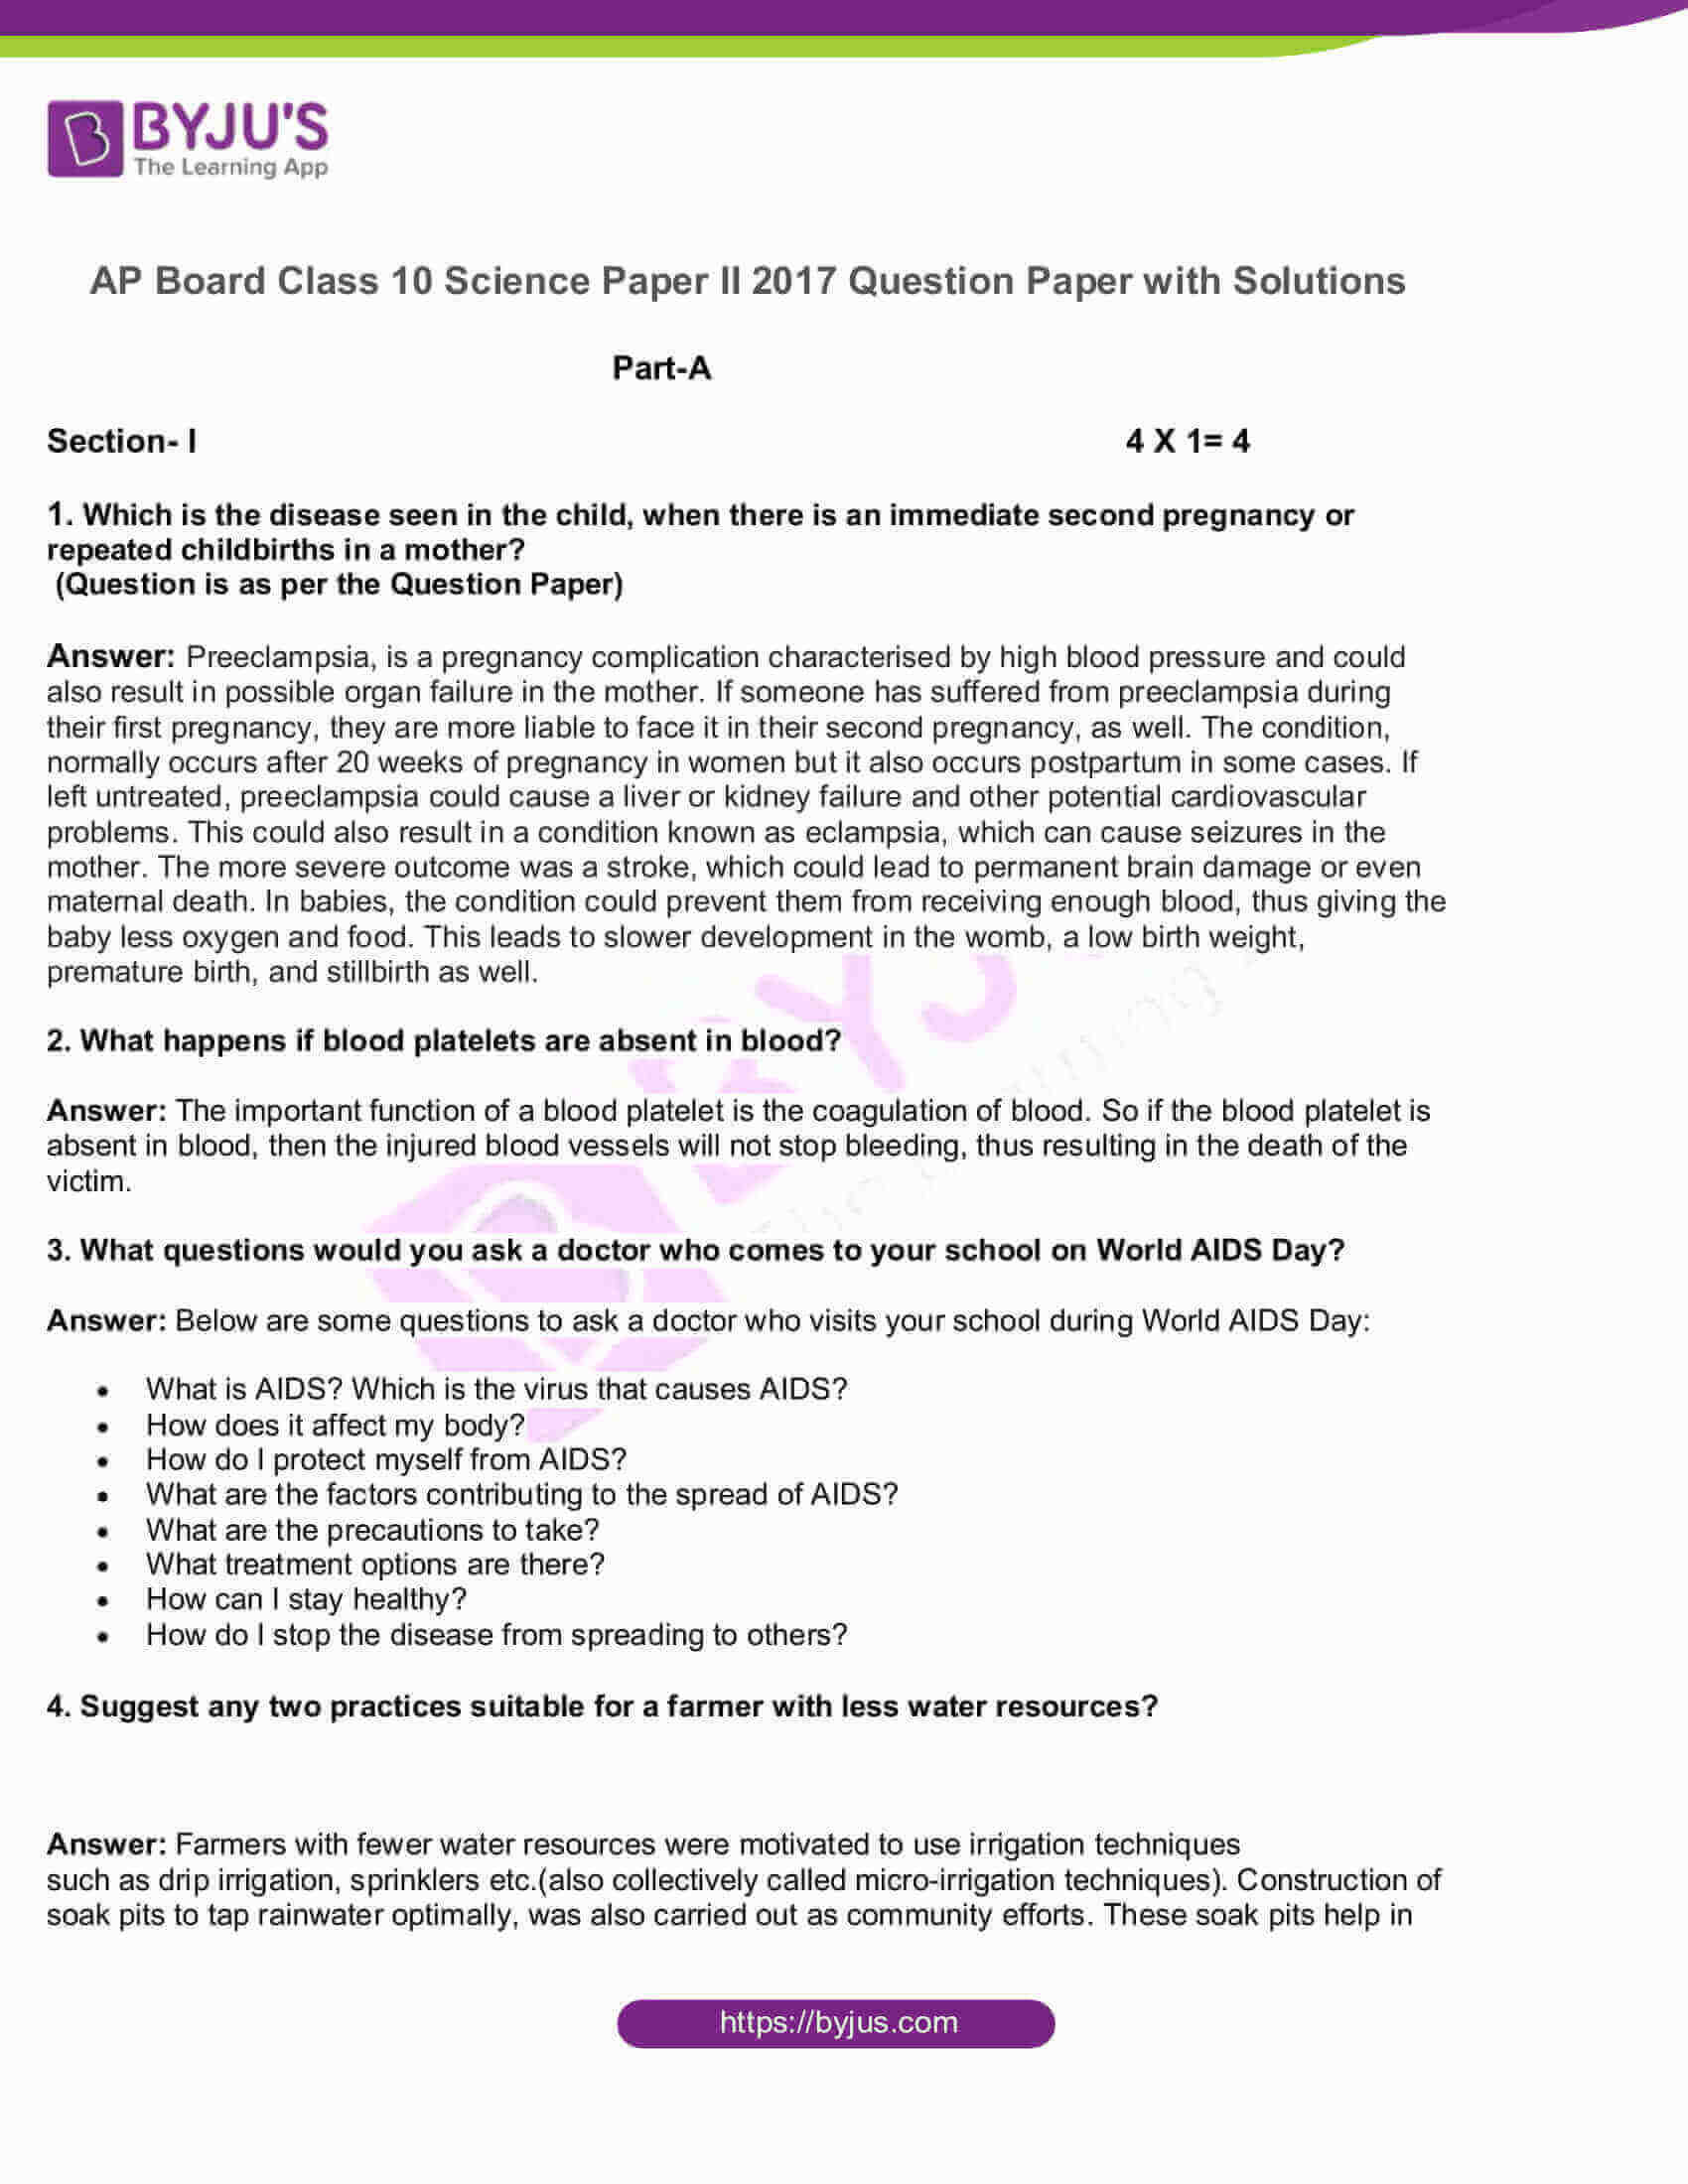 AP Board Class 10 Science Paper 2 2017 Question Paper with Solutions 01